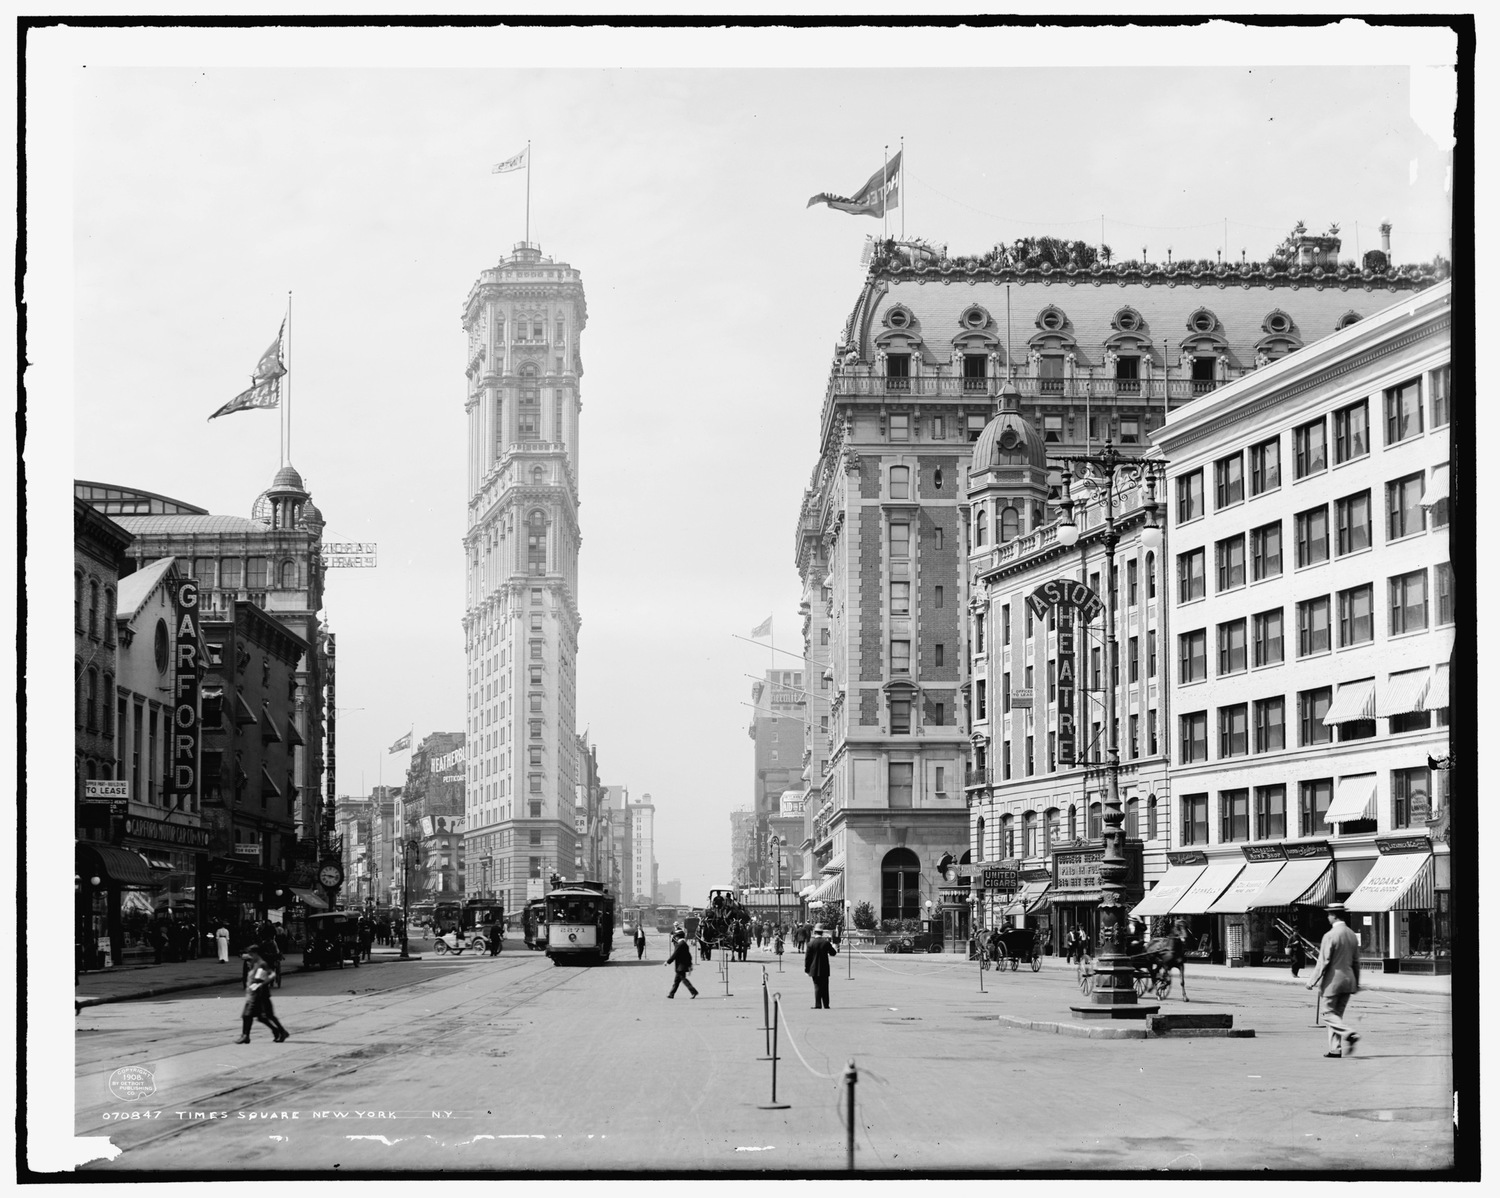 Times Square, New York, N.Y. 1908